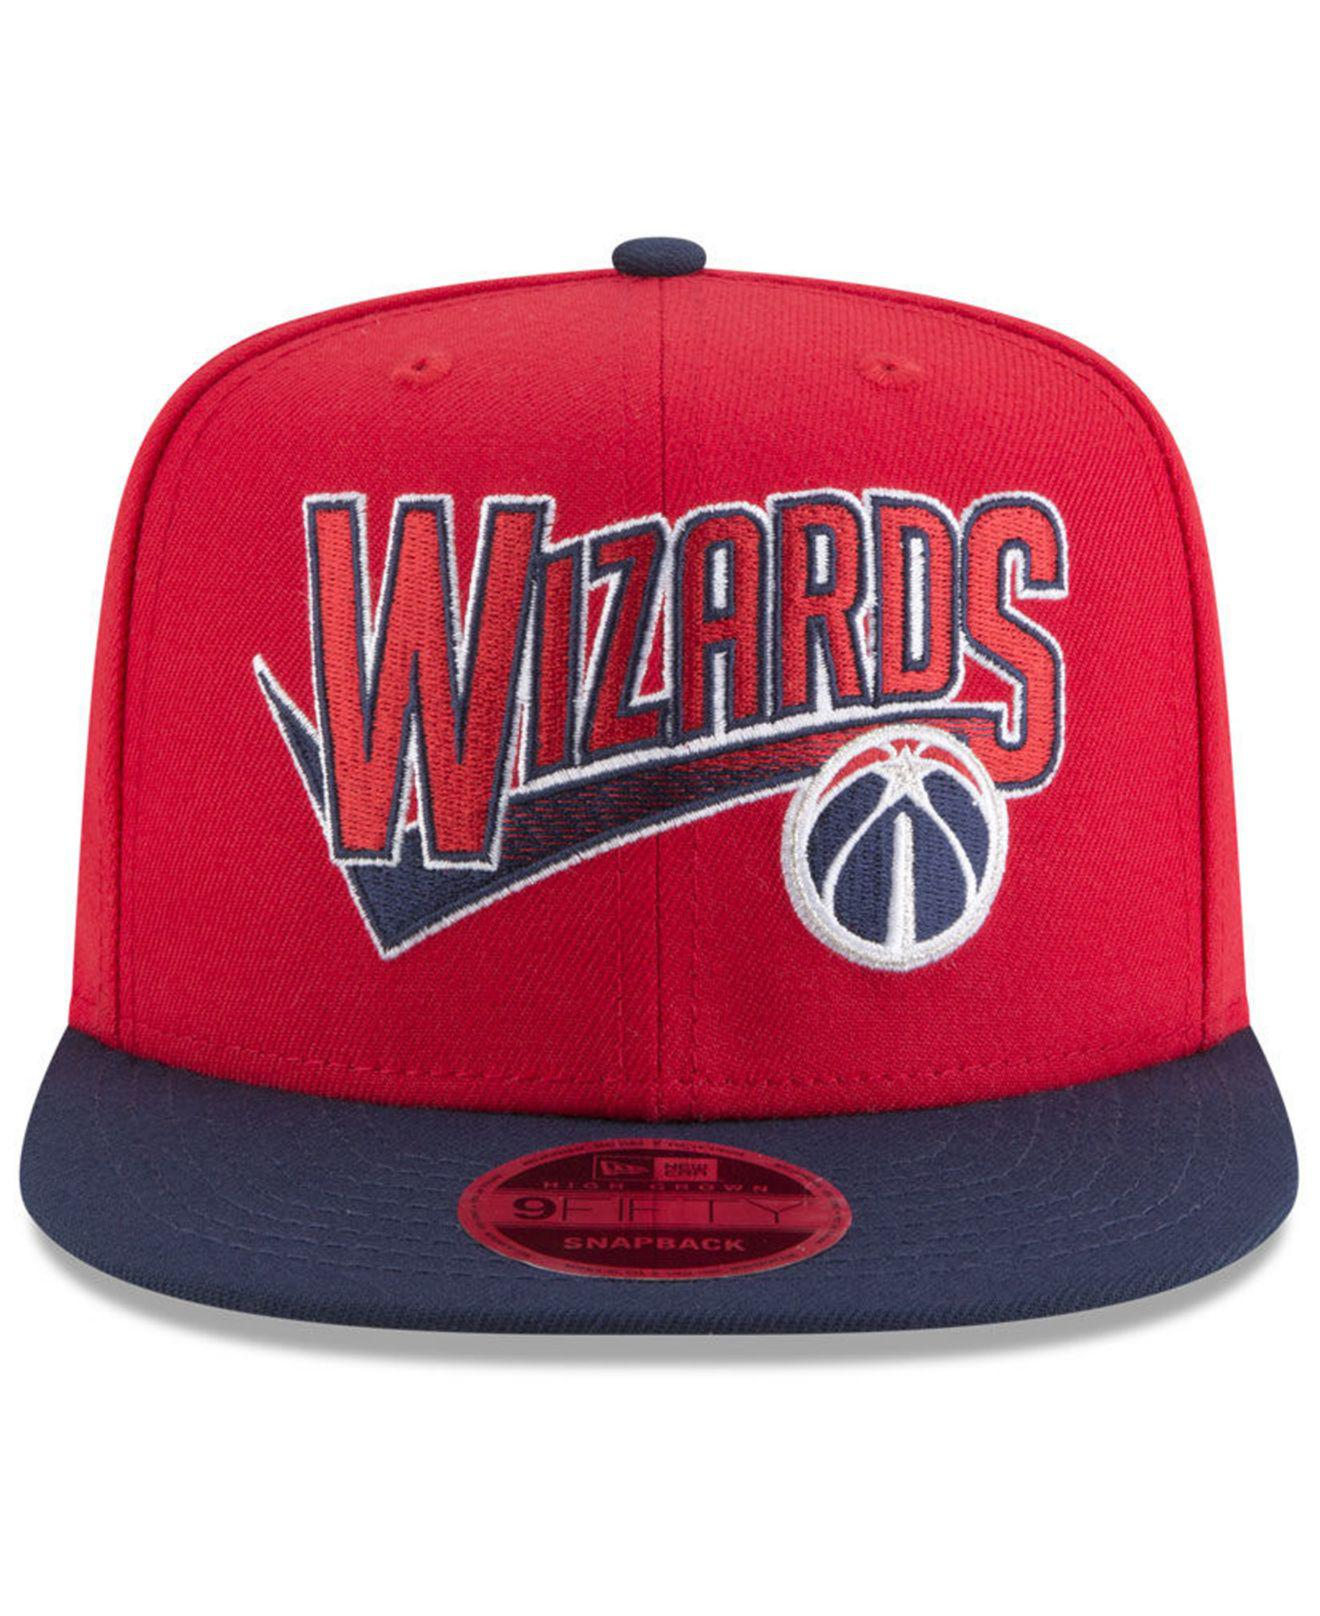 free shipping fb5c7 b74d8 ... best price lyst ktz washington wizards retro tail 9fifty snapback cap  in red for men a86bb